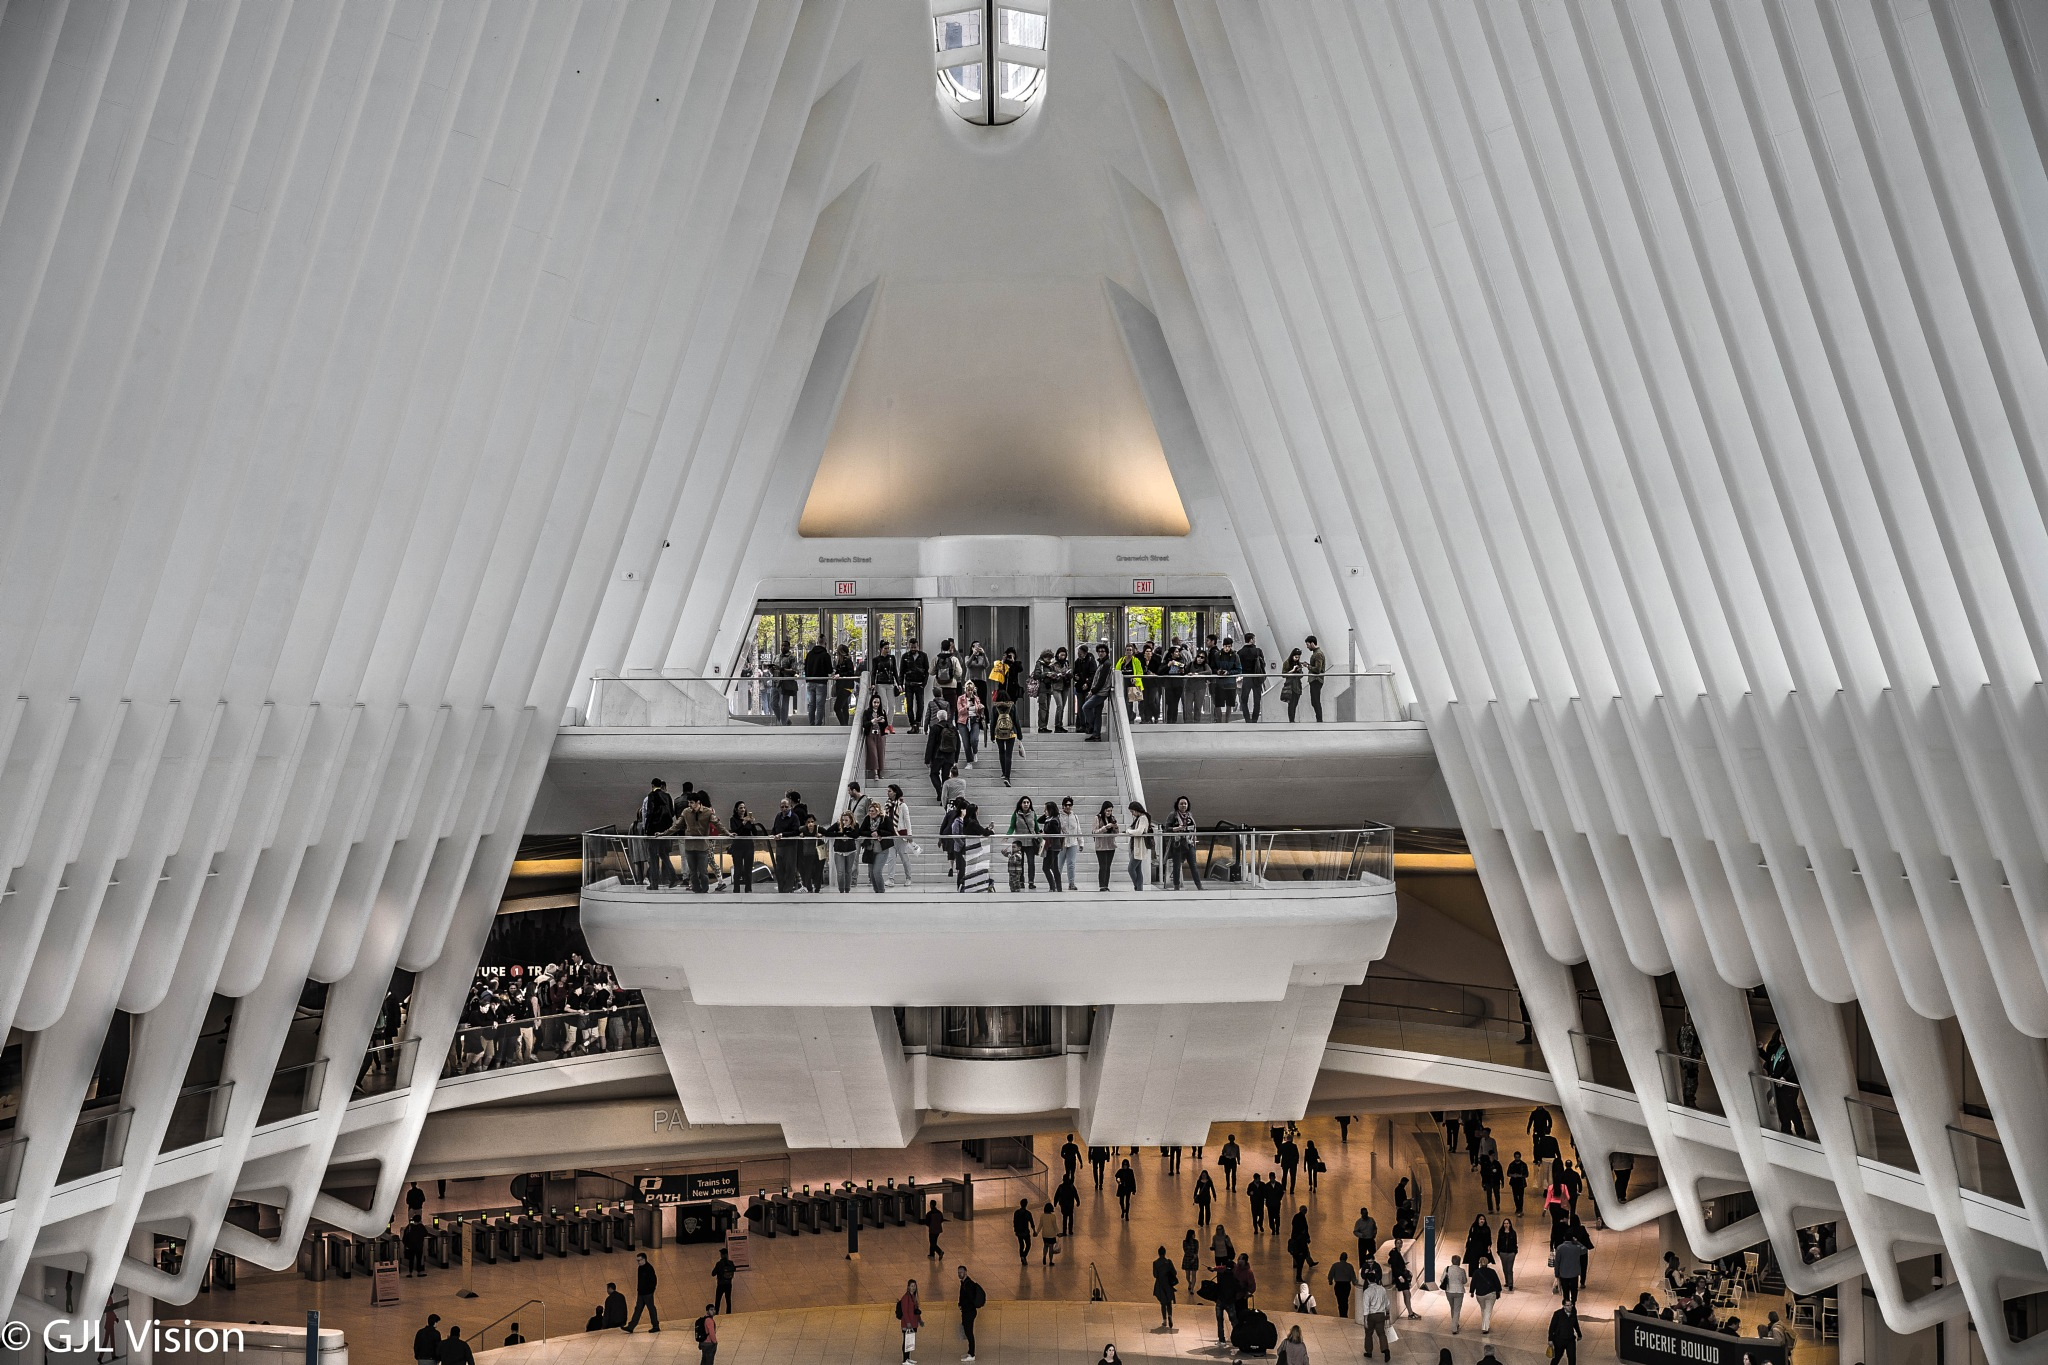 Inside The Oculus by gilbert.lopez.14